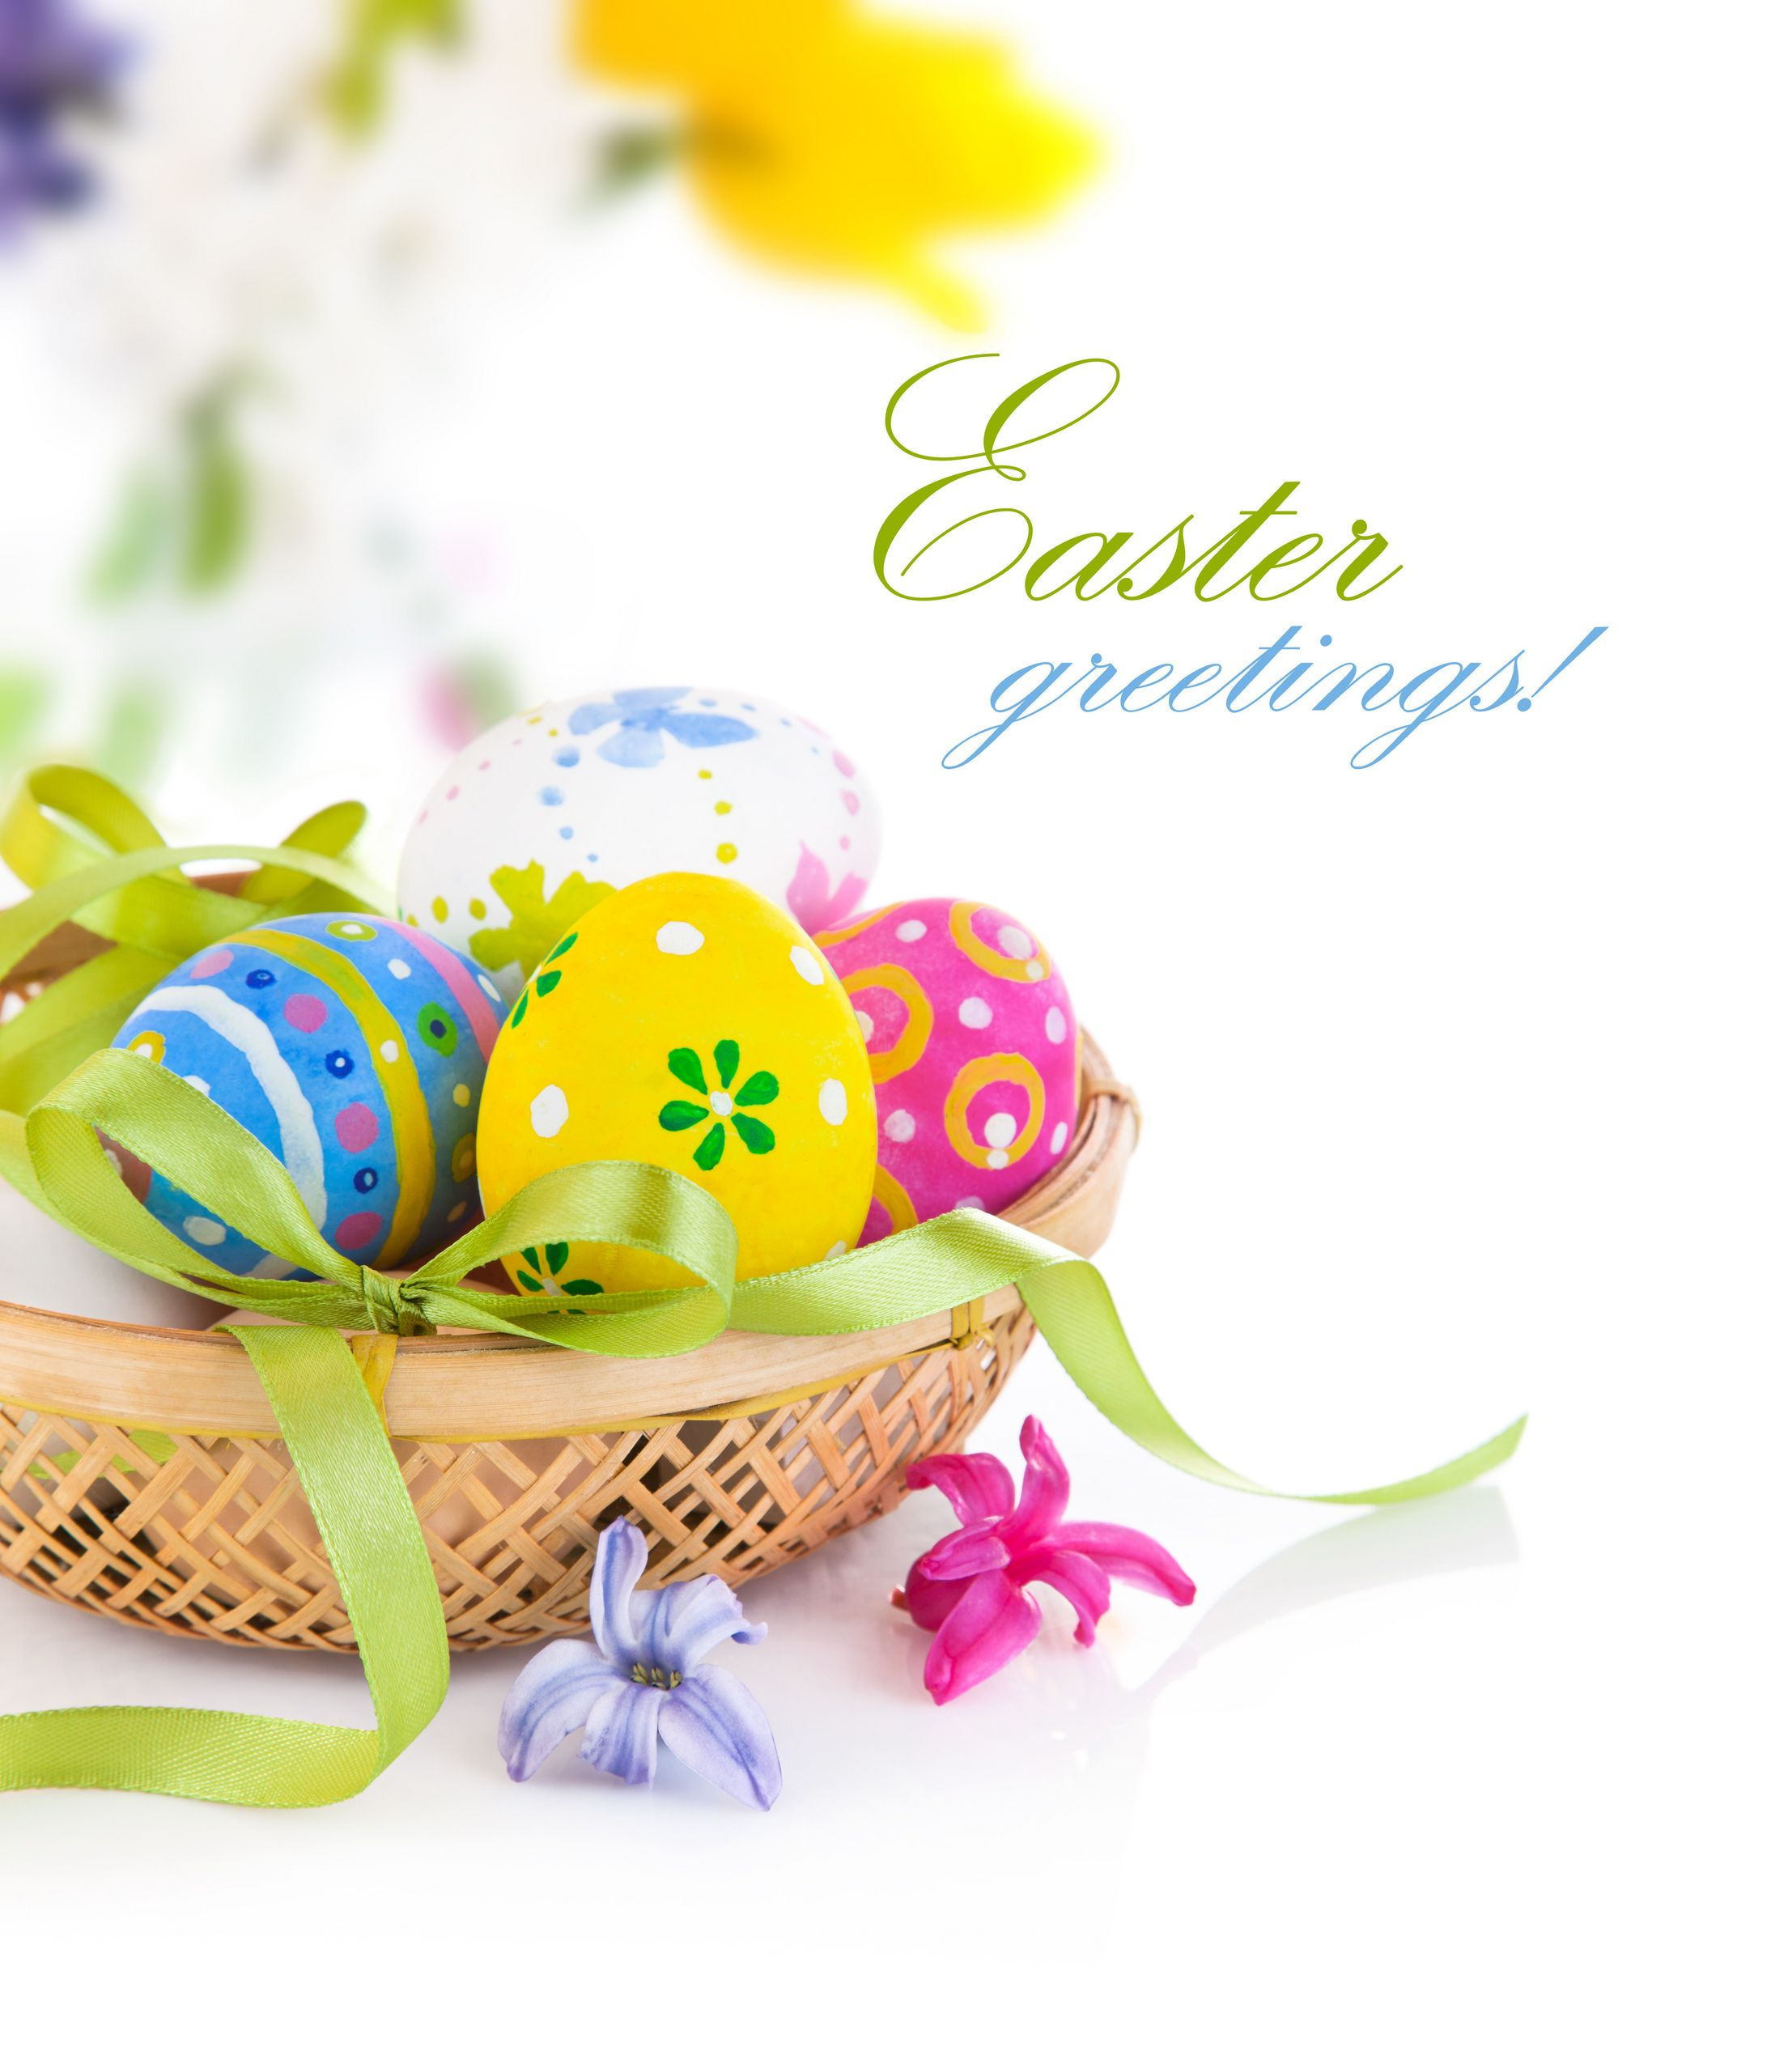 45 CREATIVE EASTER CARD INSPIRATIONS FOR YOUR LOVED ONES – Easter Greeting Cards